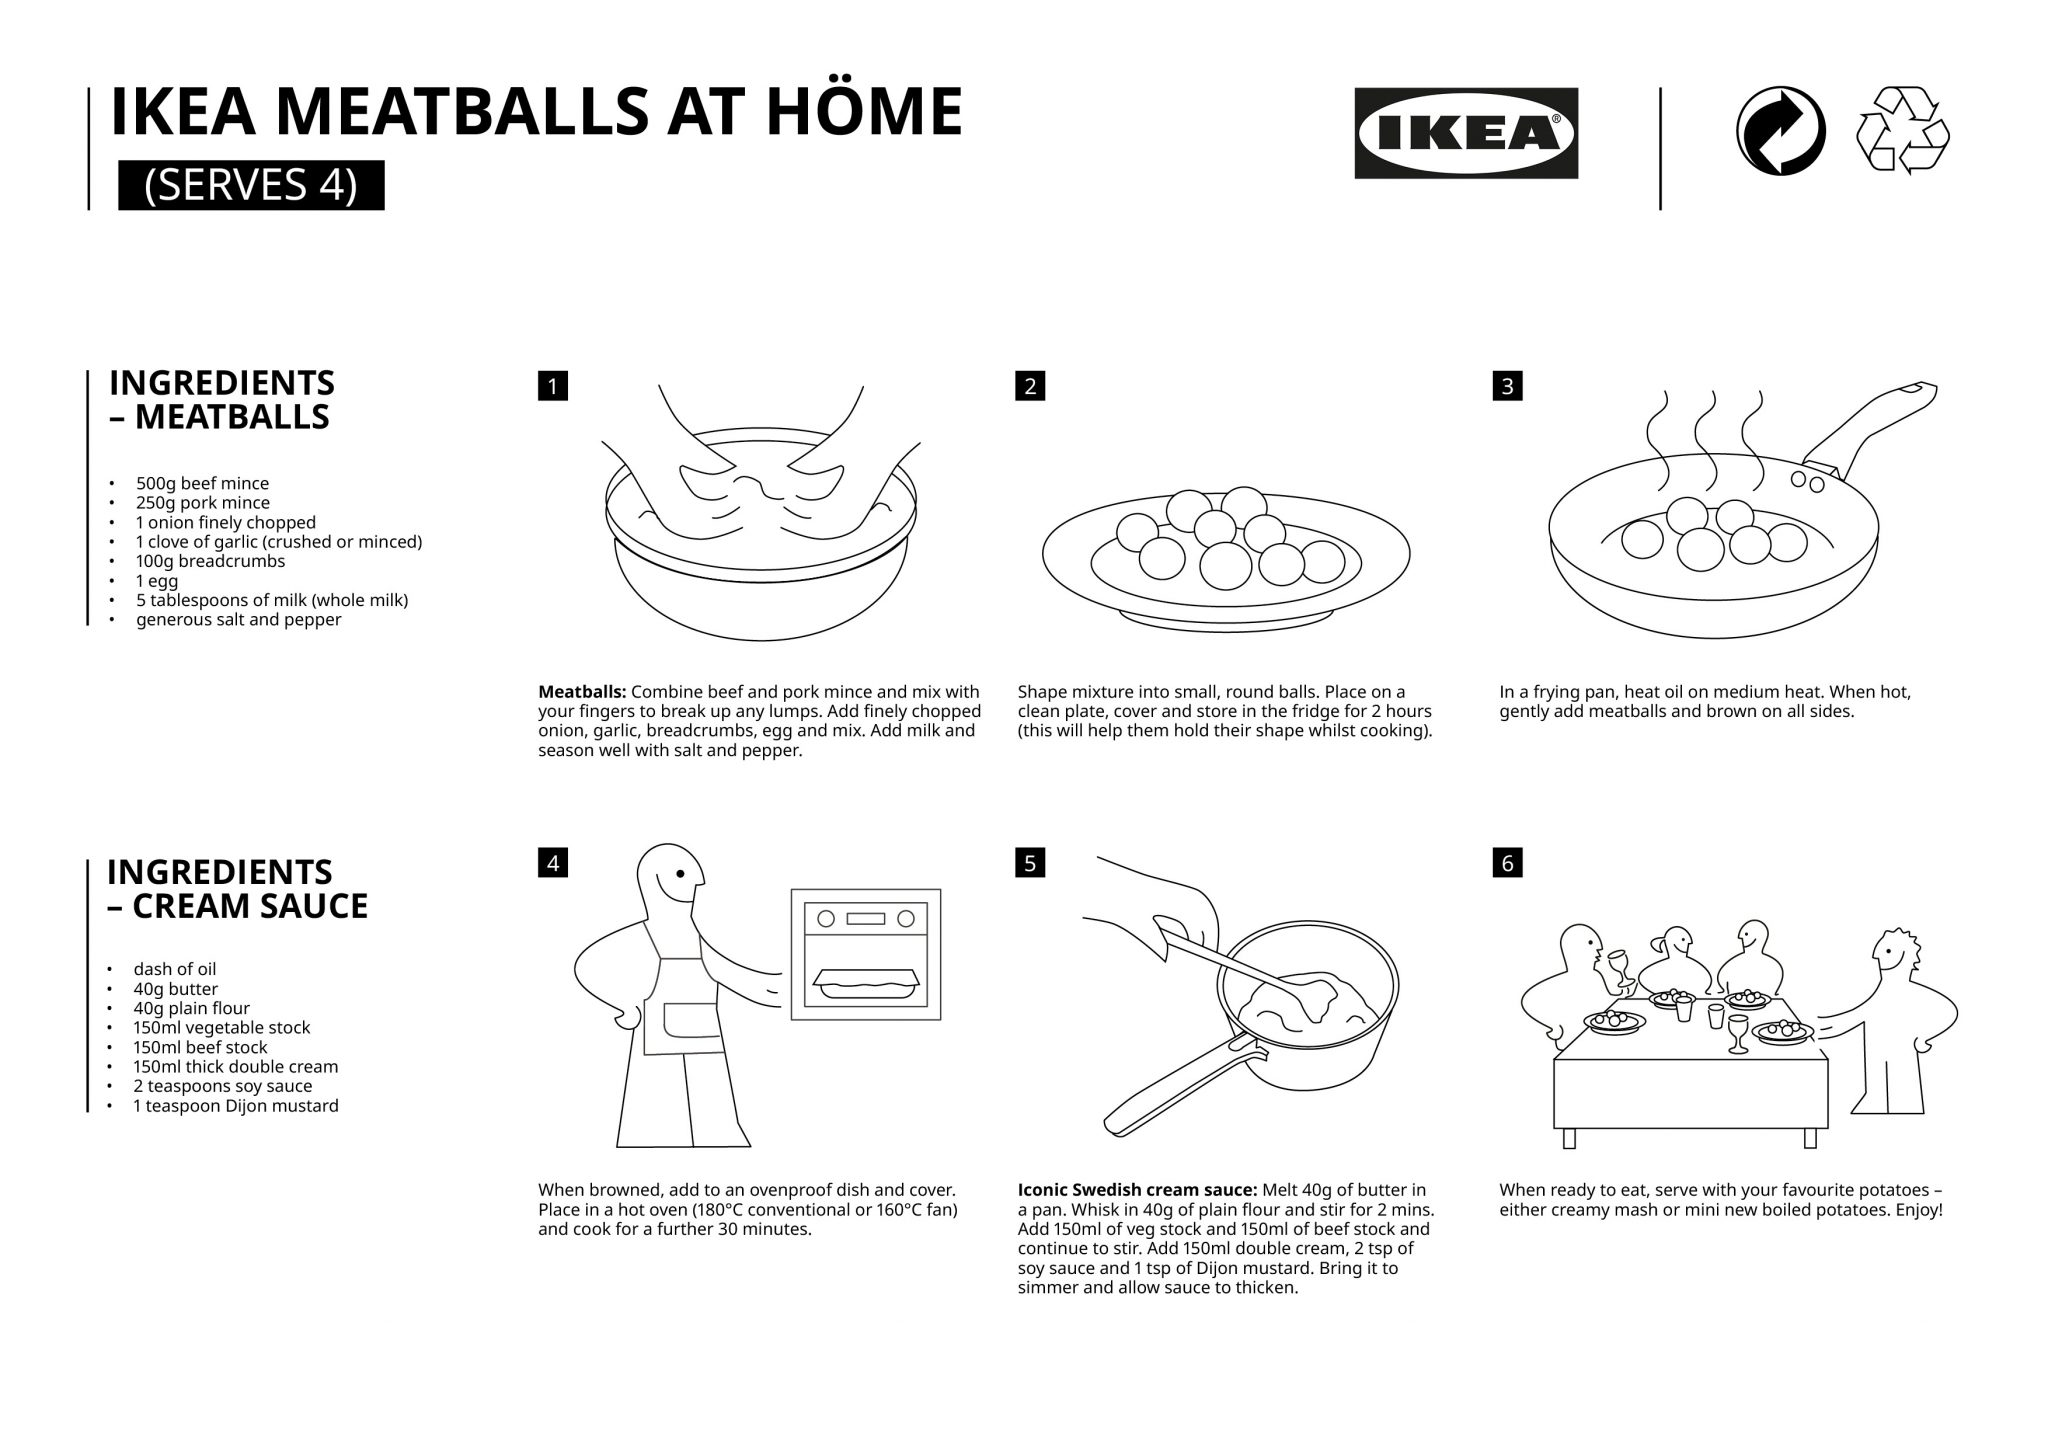 IKEA just released its famous Swedish meatball recipe | Dished